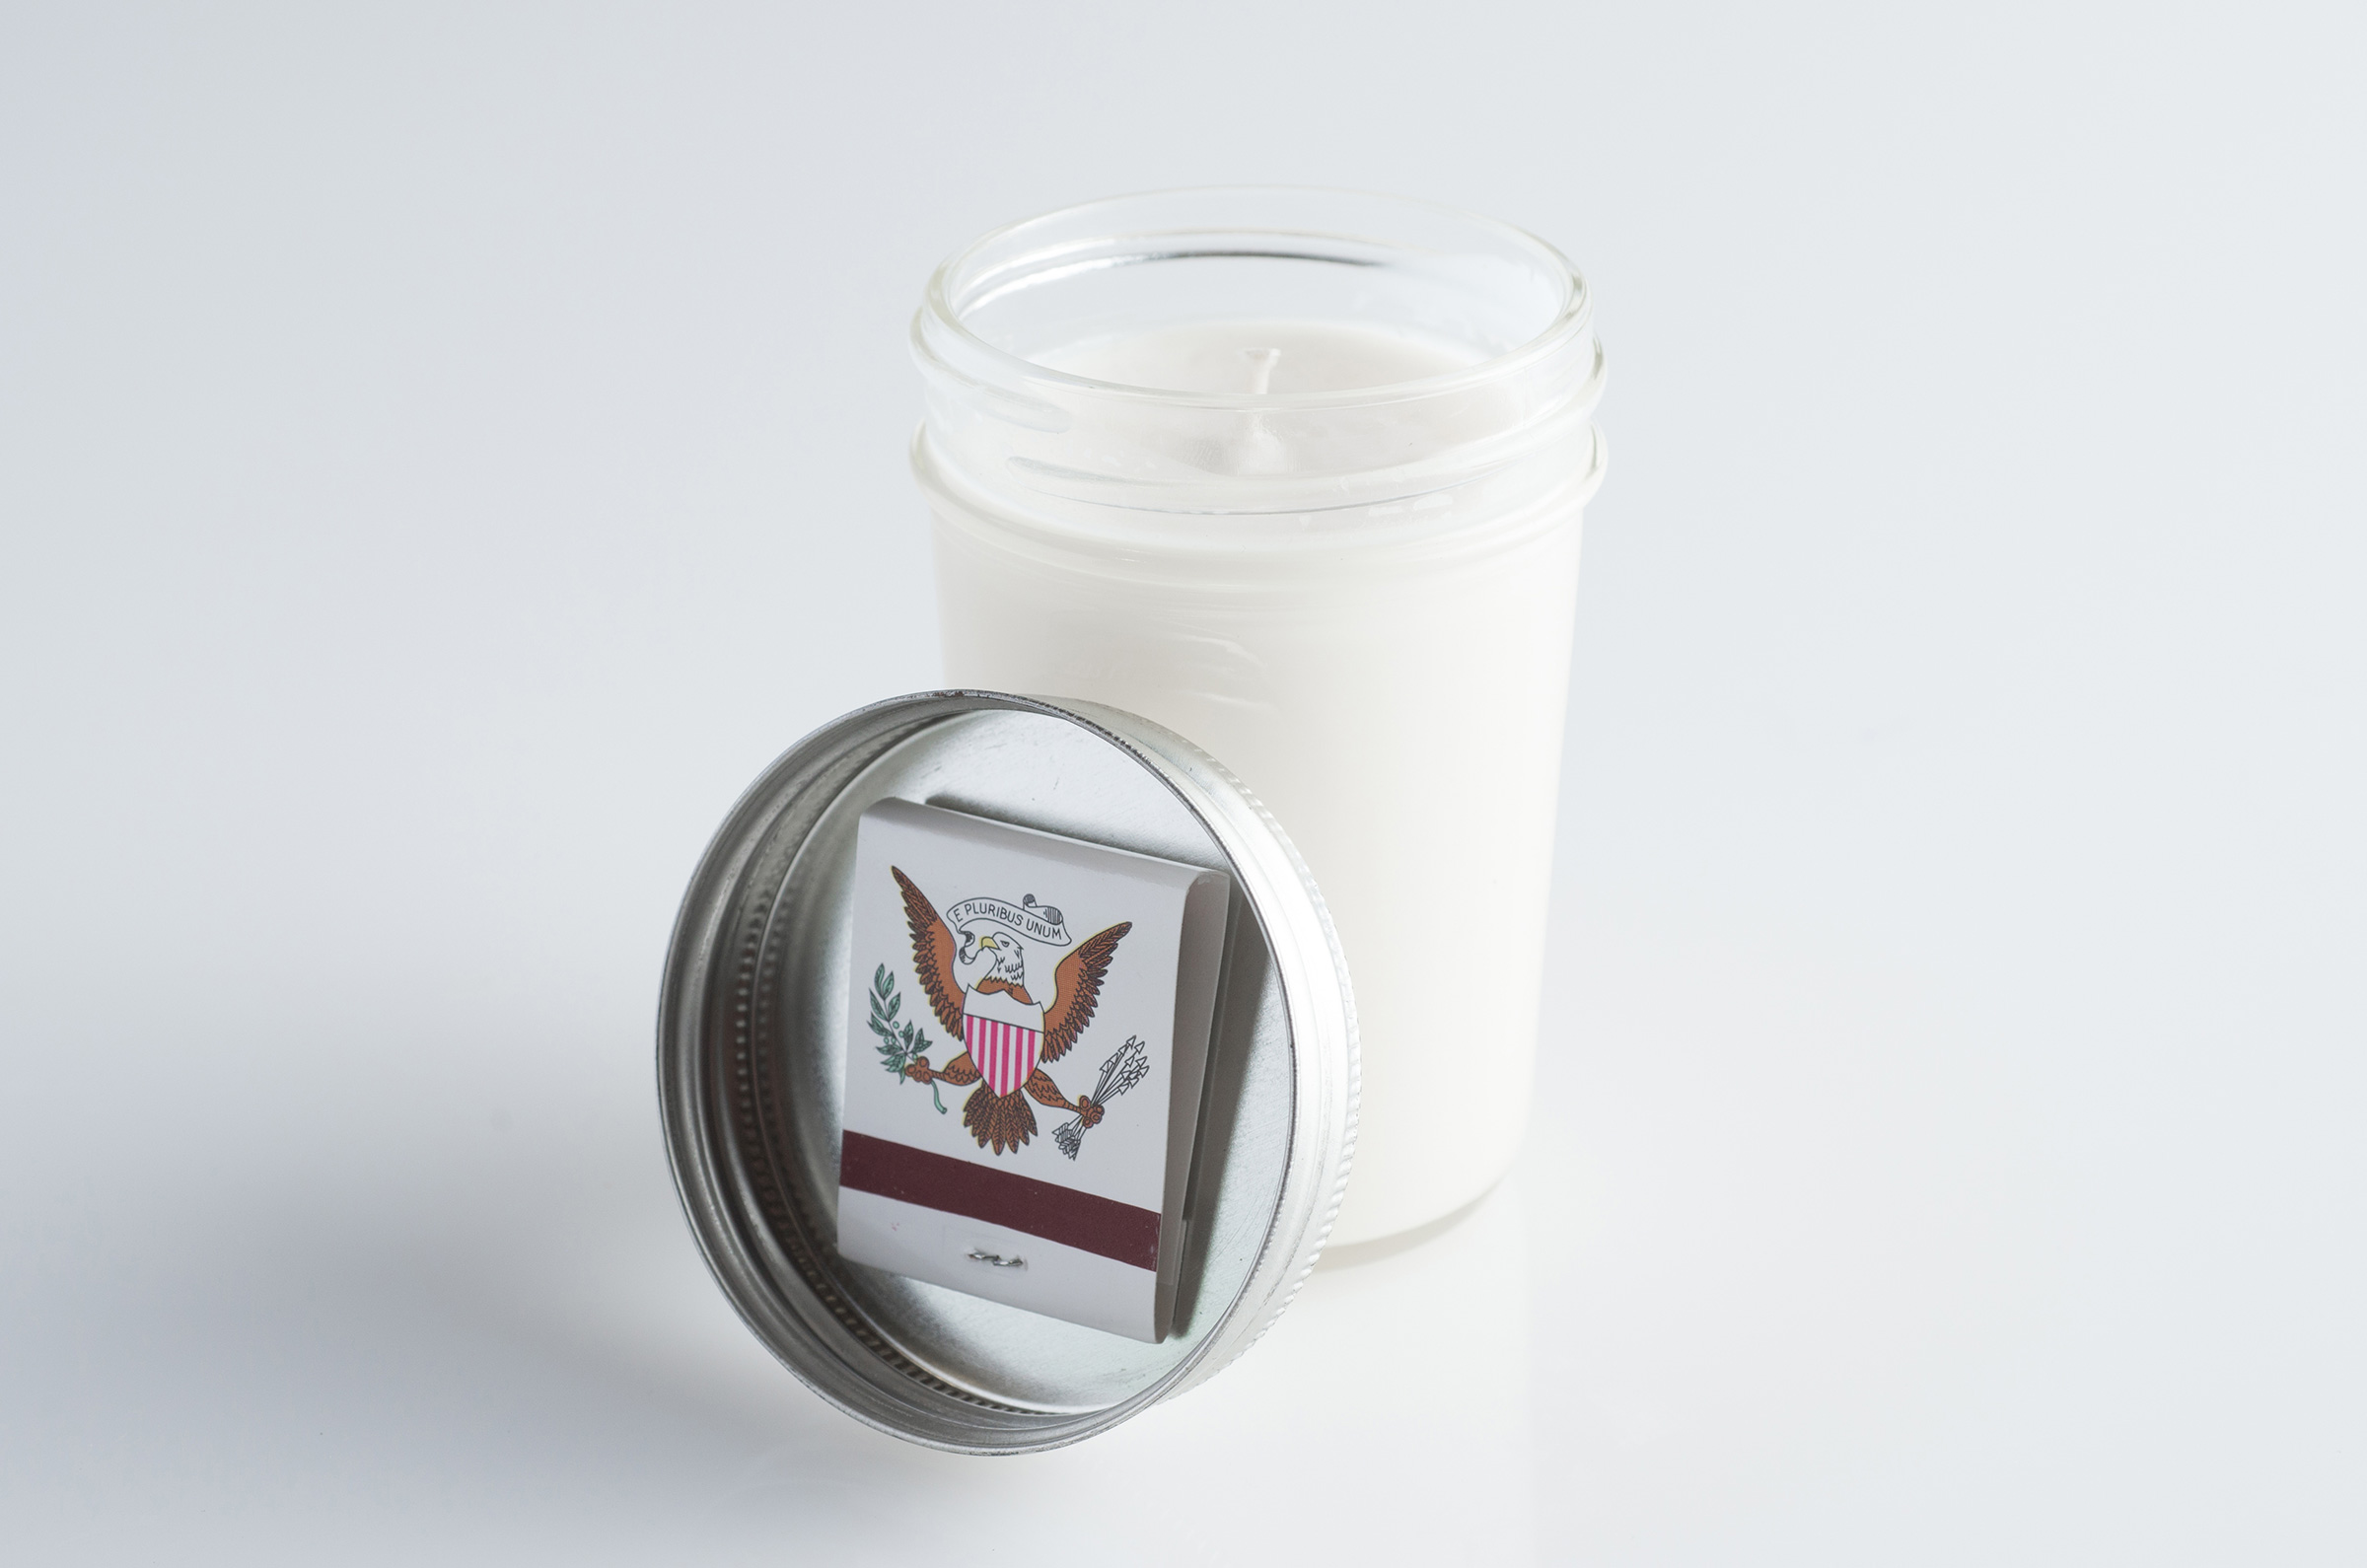 emergency candle ready to use